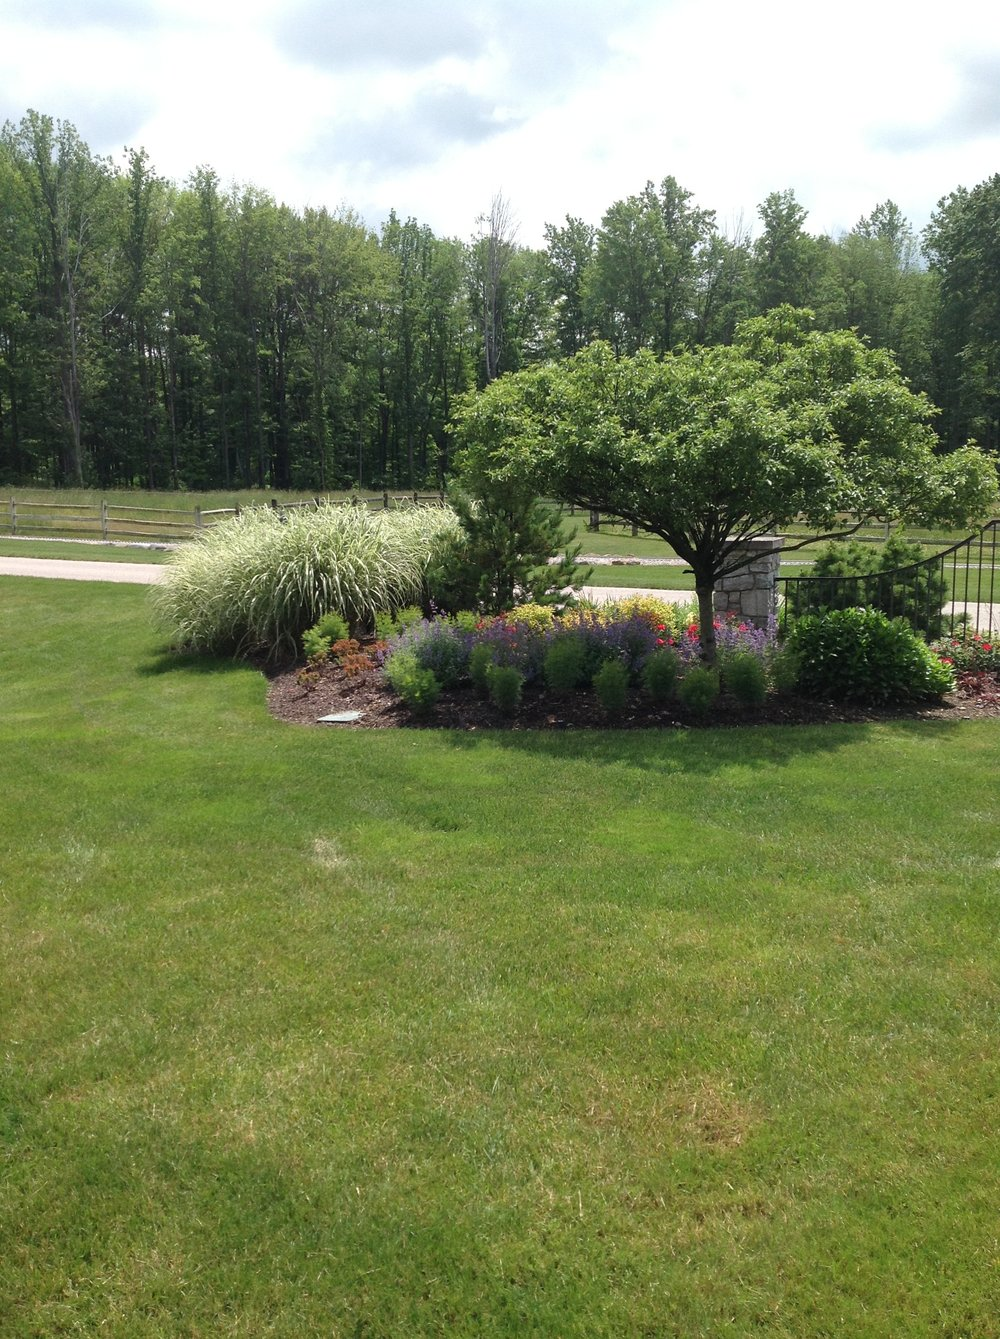 Unilock landscaping companies with top lawn fertilzer in Bainbridge Township, OH